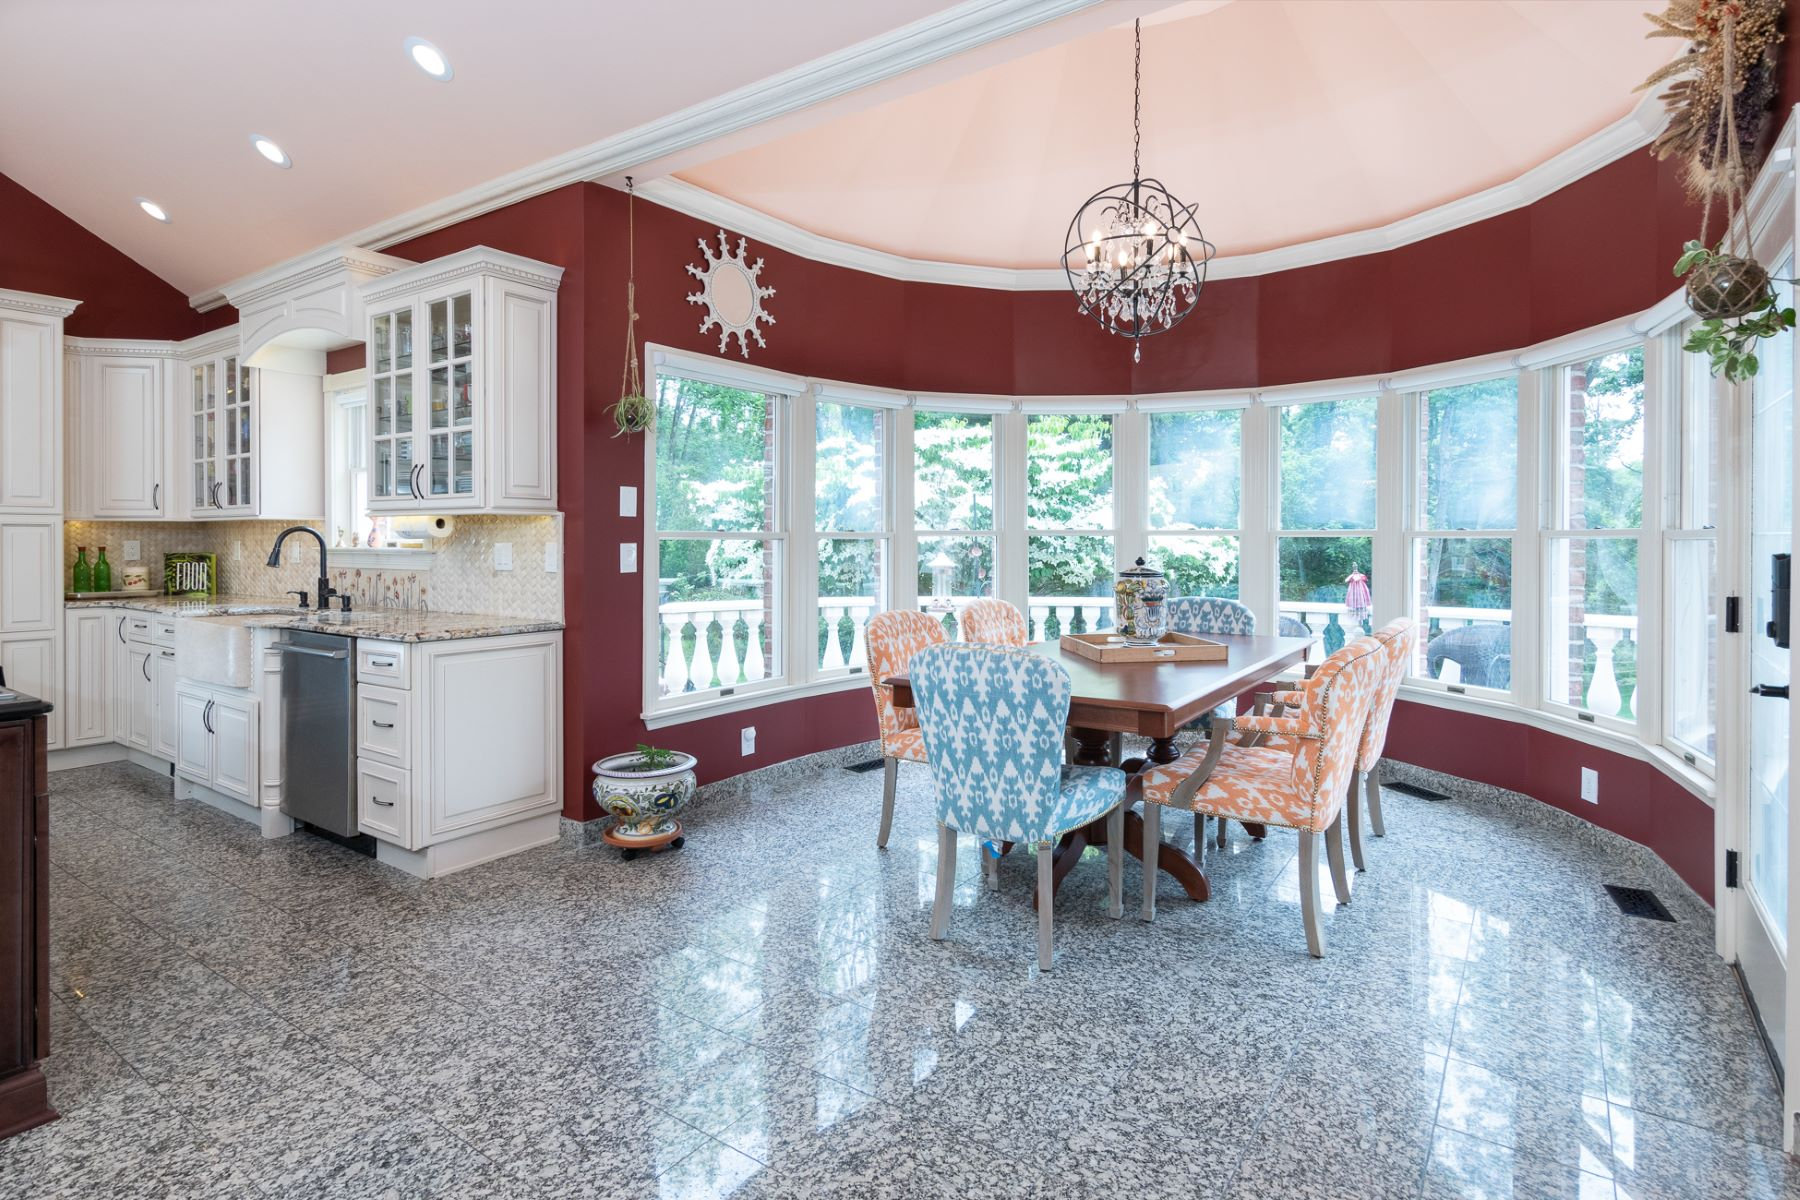 Additional photo for property listing at Luxury Smart Home Enveloped by Nature 1407 Canal Road, Princeton, New Jersey 08540 United States